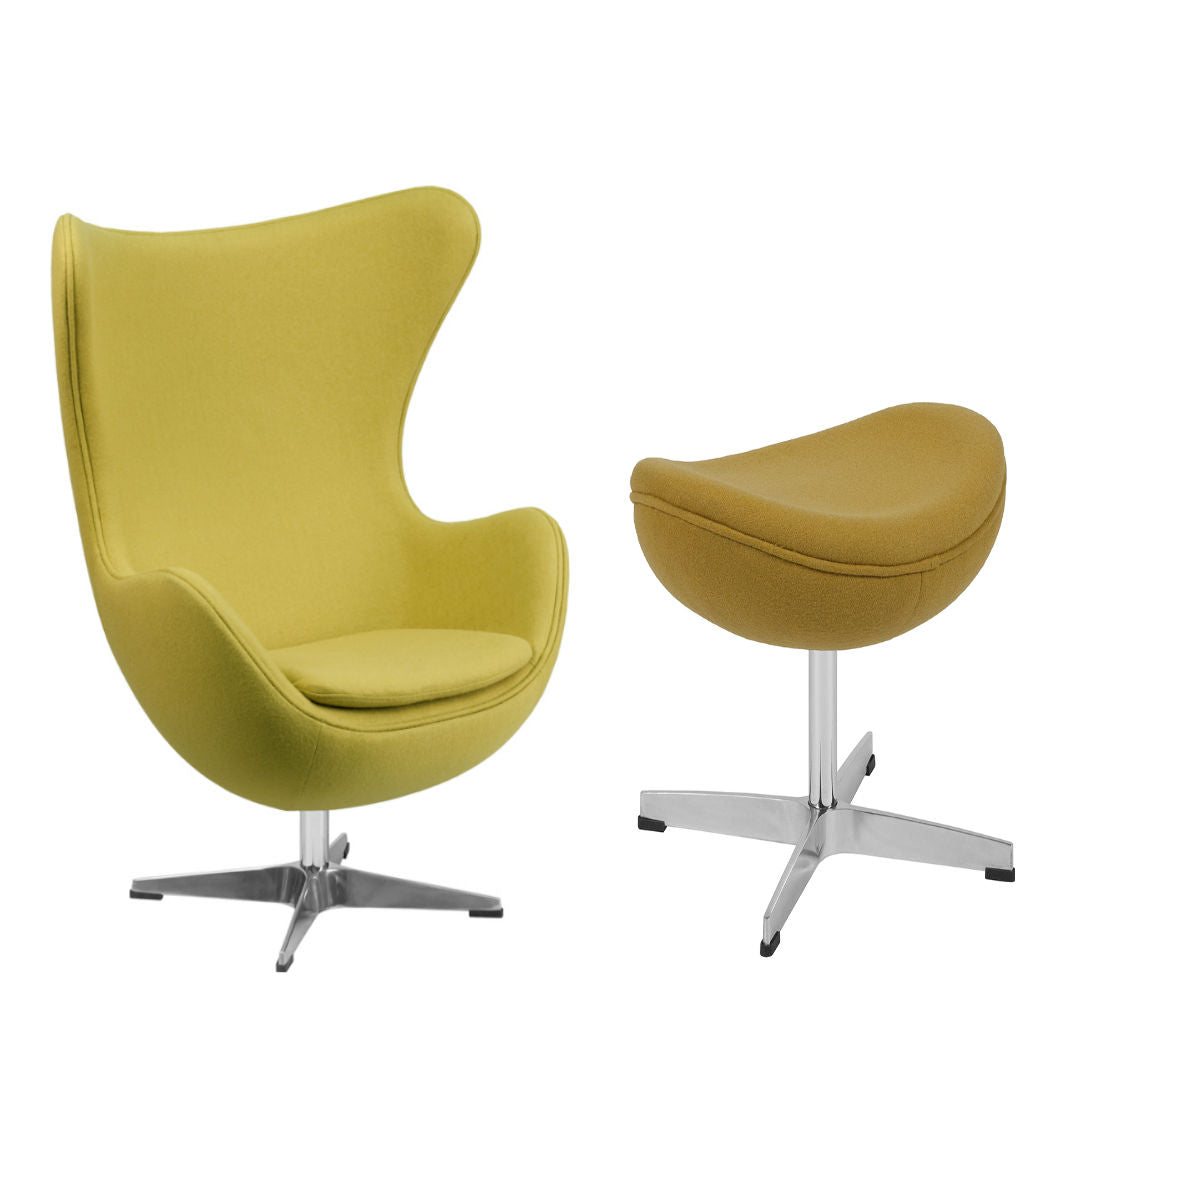 Flash Furniture Citron Wool Fabric Egg Chair with Tilt-Lock Mechanism and Citron Wool Fabric Ottoman